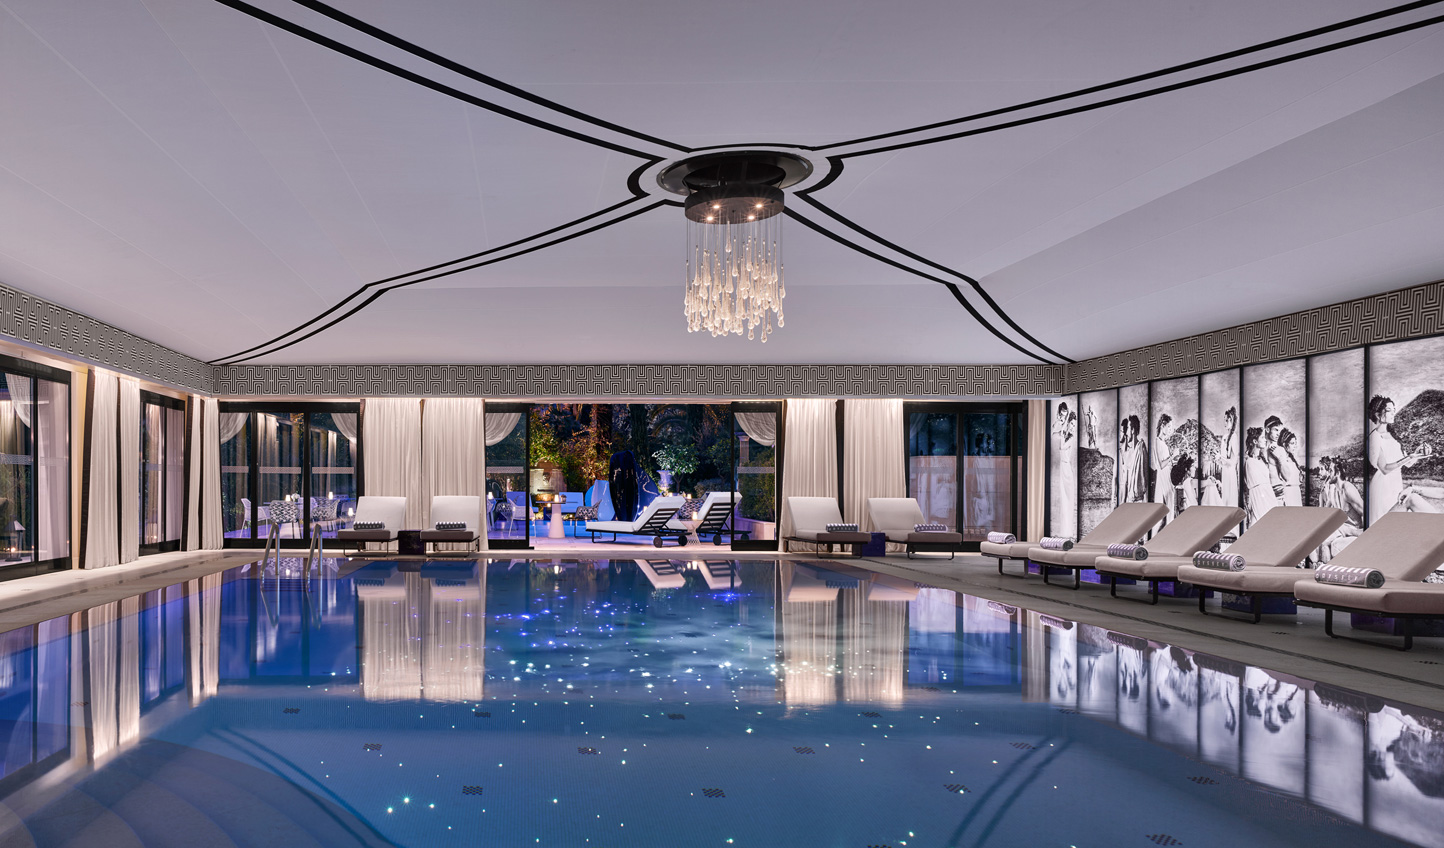 For a touch of style, head to the Karl Lagerfeld designed Odyssey Pool